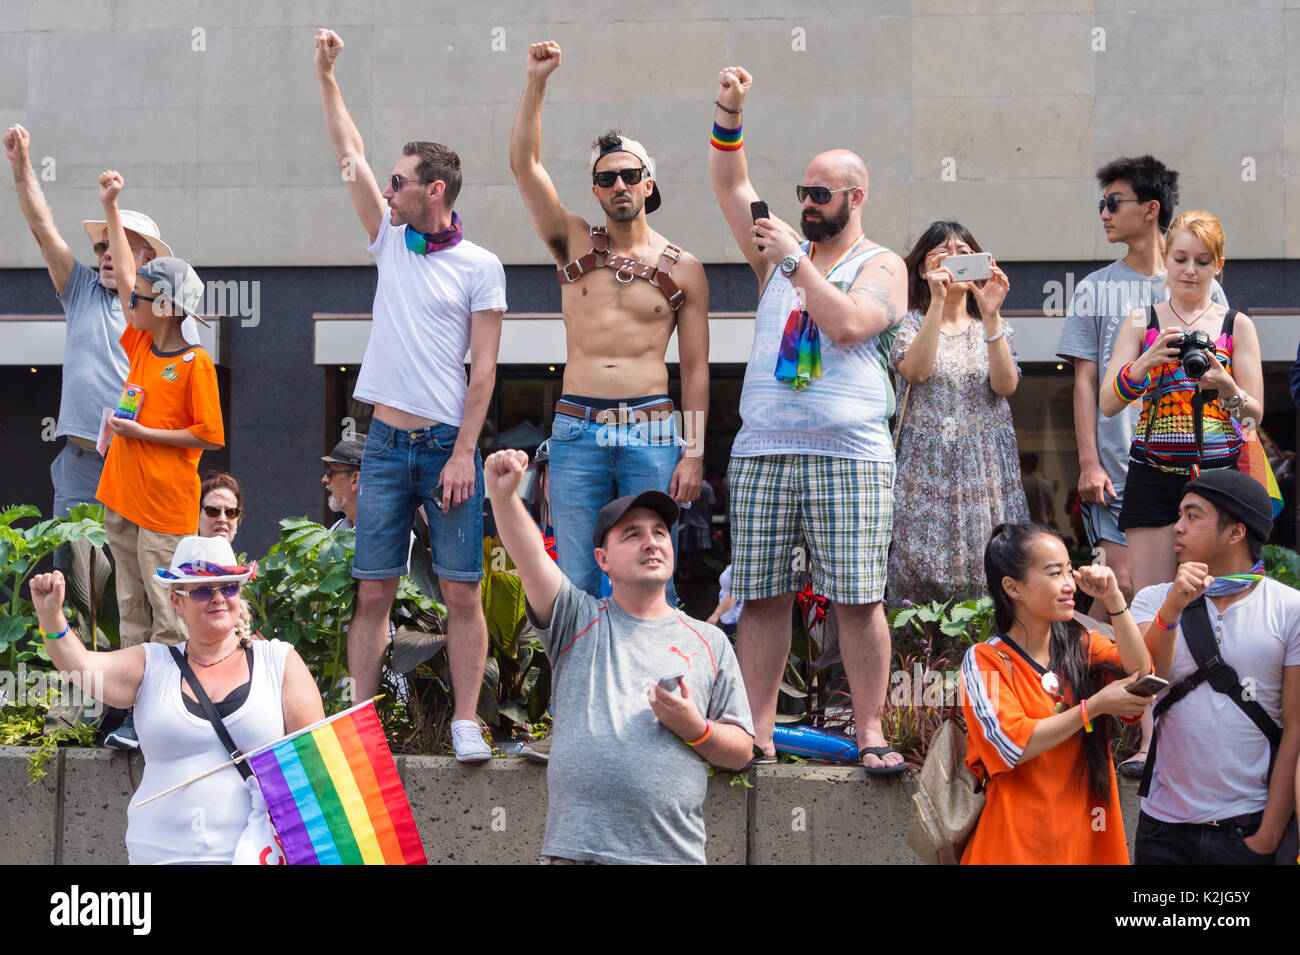 Montreal, CANADA - 20 August 2017: Spectators raise their fists during moment of silence at Montreal Gay Pride parade. - Stock Image